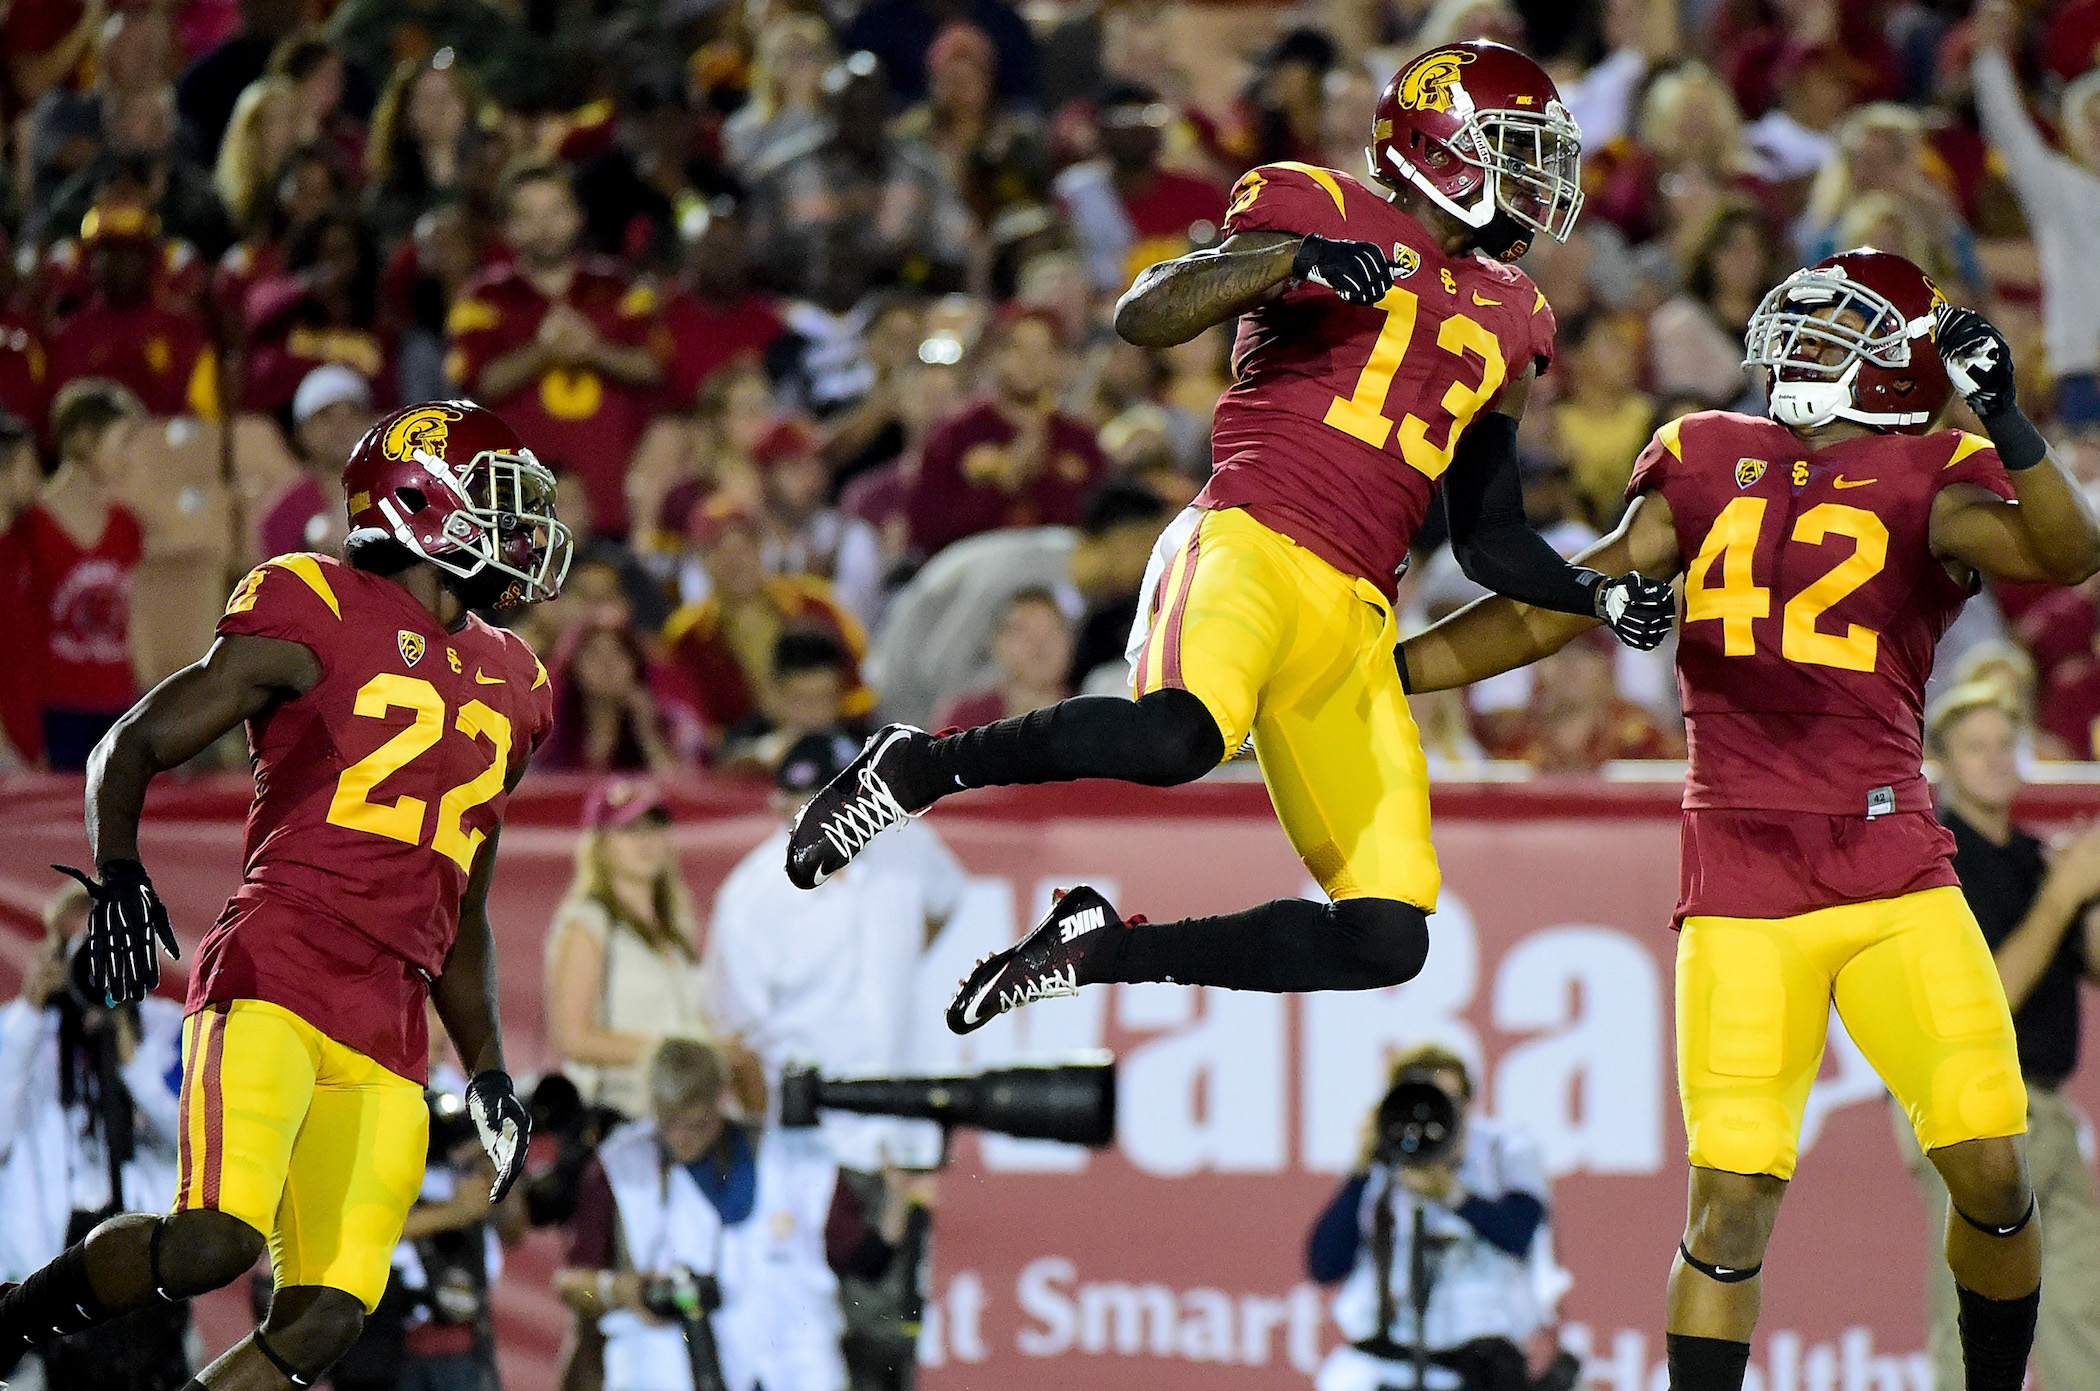 LOS ANGELES, CA - SEPTEMBER 05:  Kevon Seymour #13 of the USC Trojans celebrates his tackle after a punt with Uchenna Nwosu #42 and Leon McQuay III #22 against the Arkansas State Red Wolves at Los Angeles Coliseum on September 5, 2015 in Los Angeles, California.  (Photo by Harry How/Getty Images)